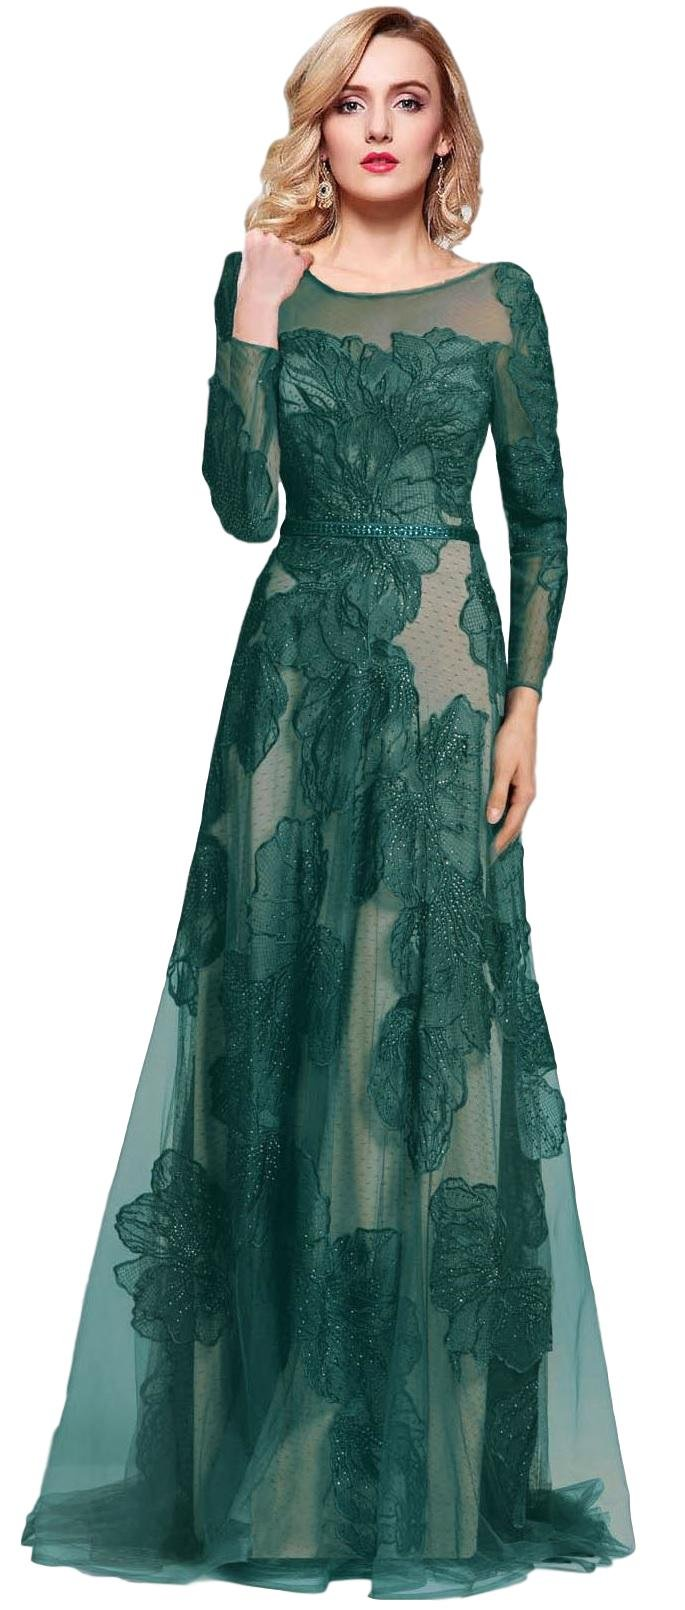 Meier Womens Illusion Embroidery Evening